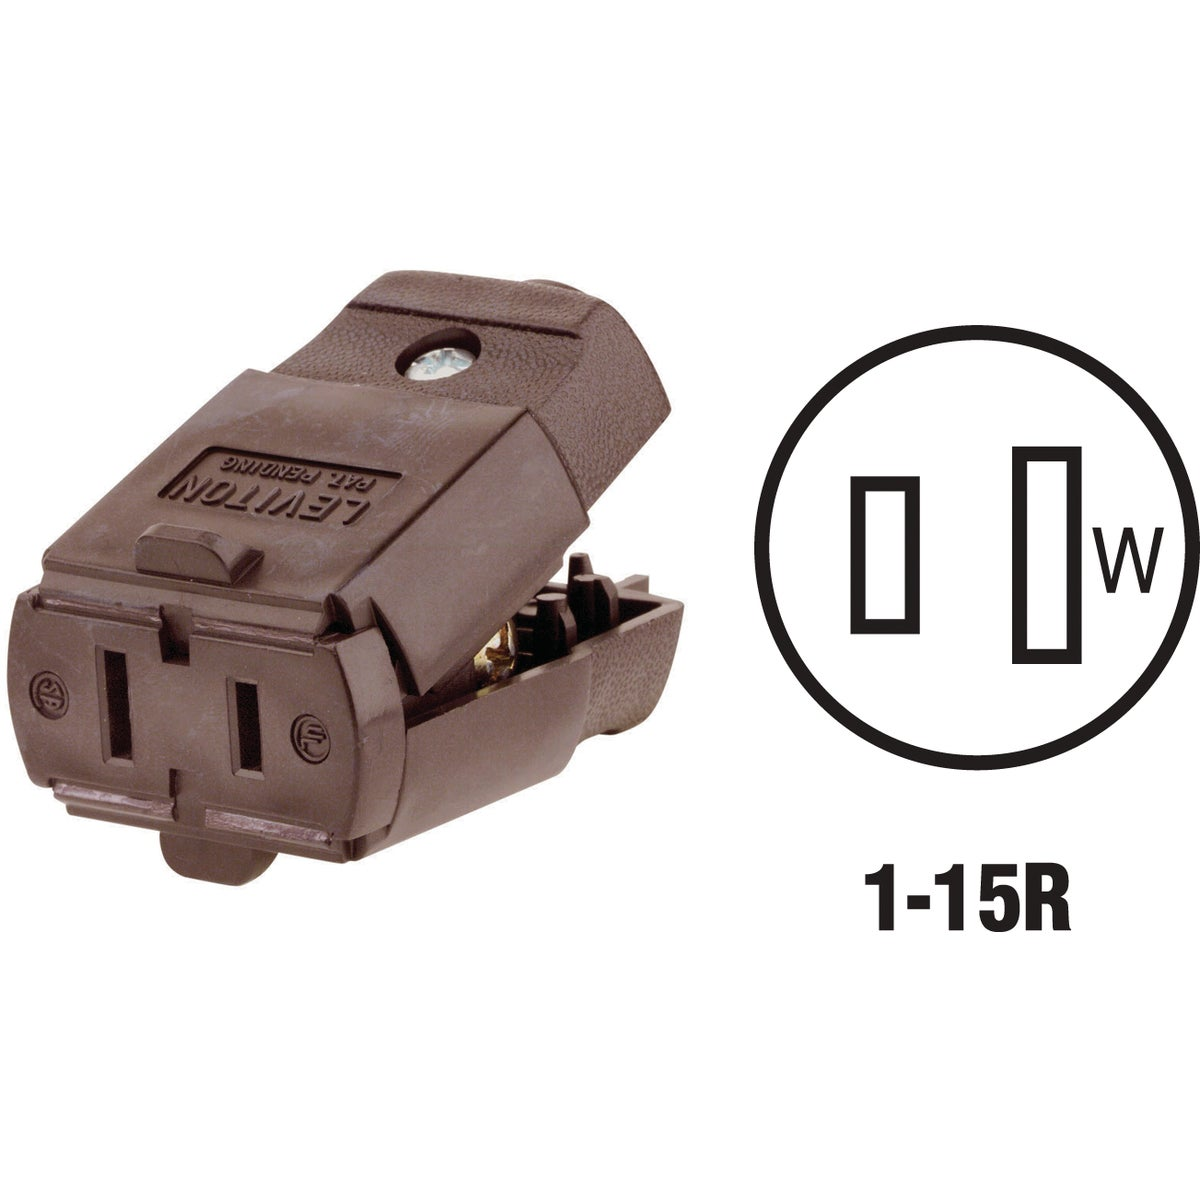 BRN CORD CONNECTOR - 0150010200P by Leviton Mfg Co